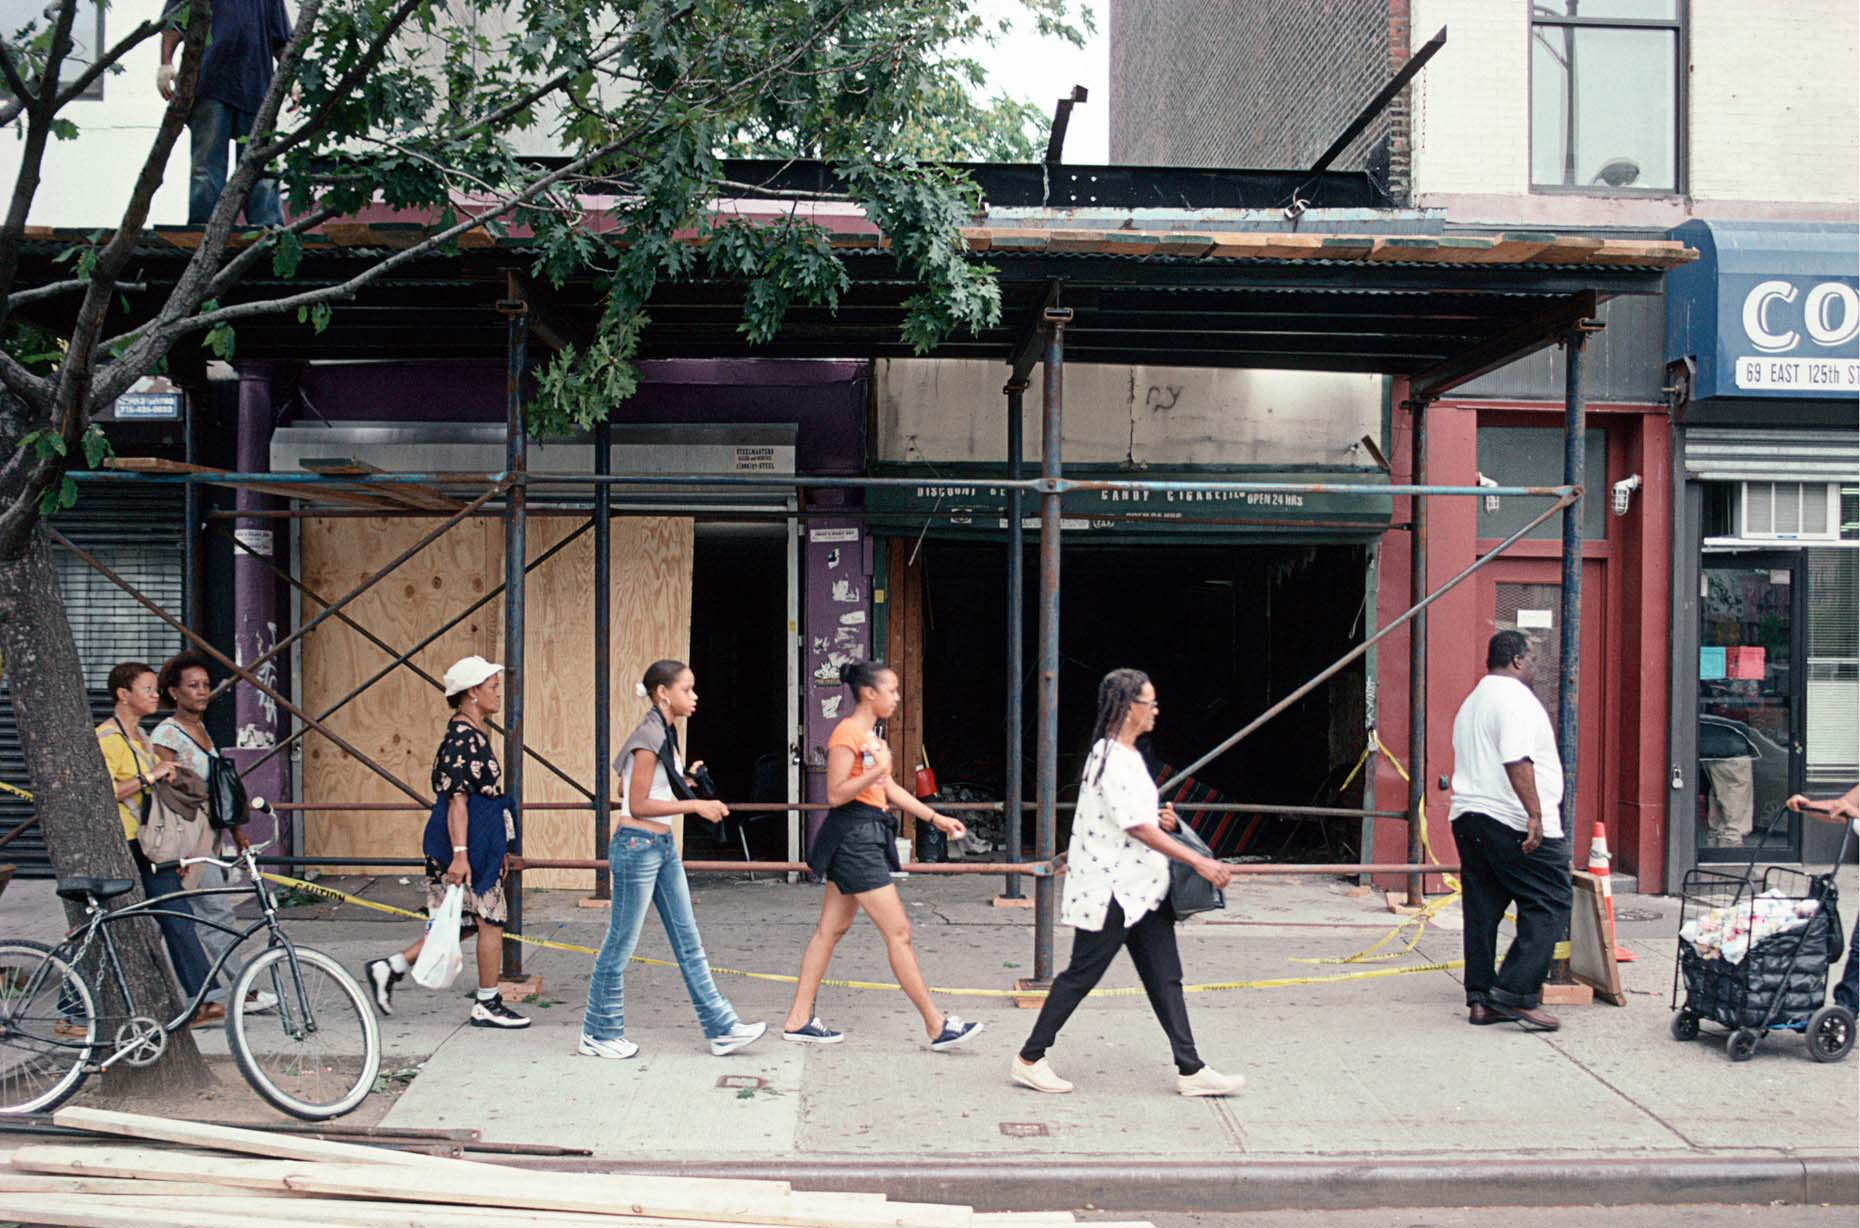 16_65 East 125th St., Harlem, 2001_.jpg